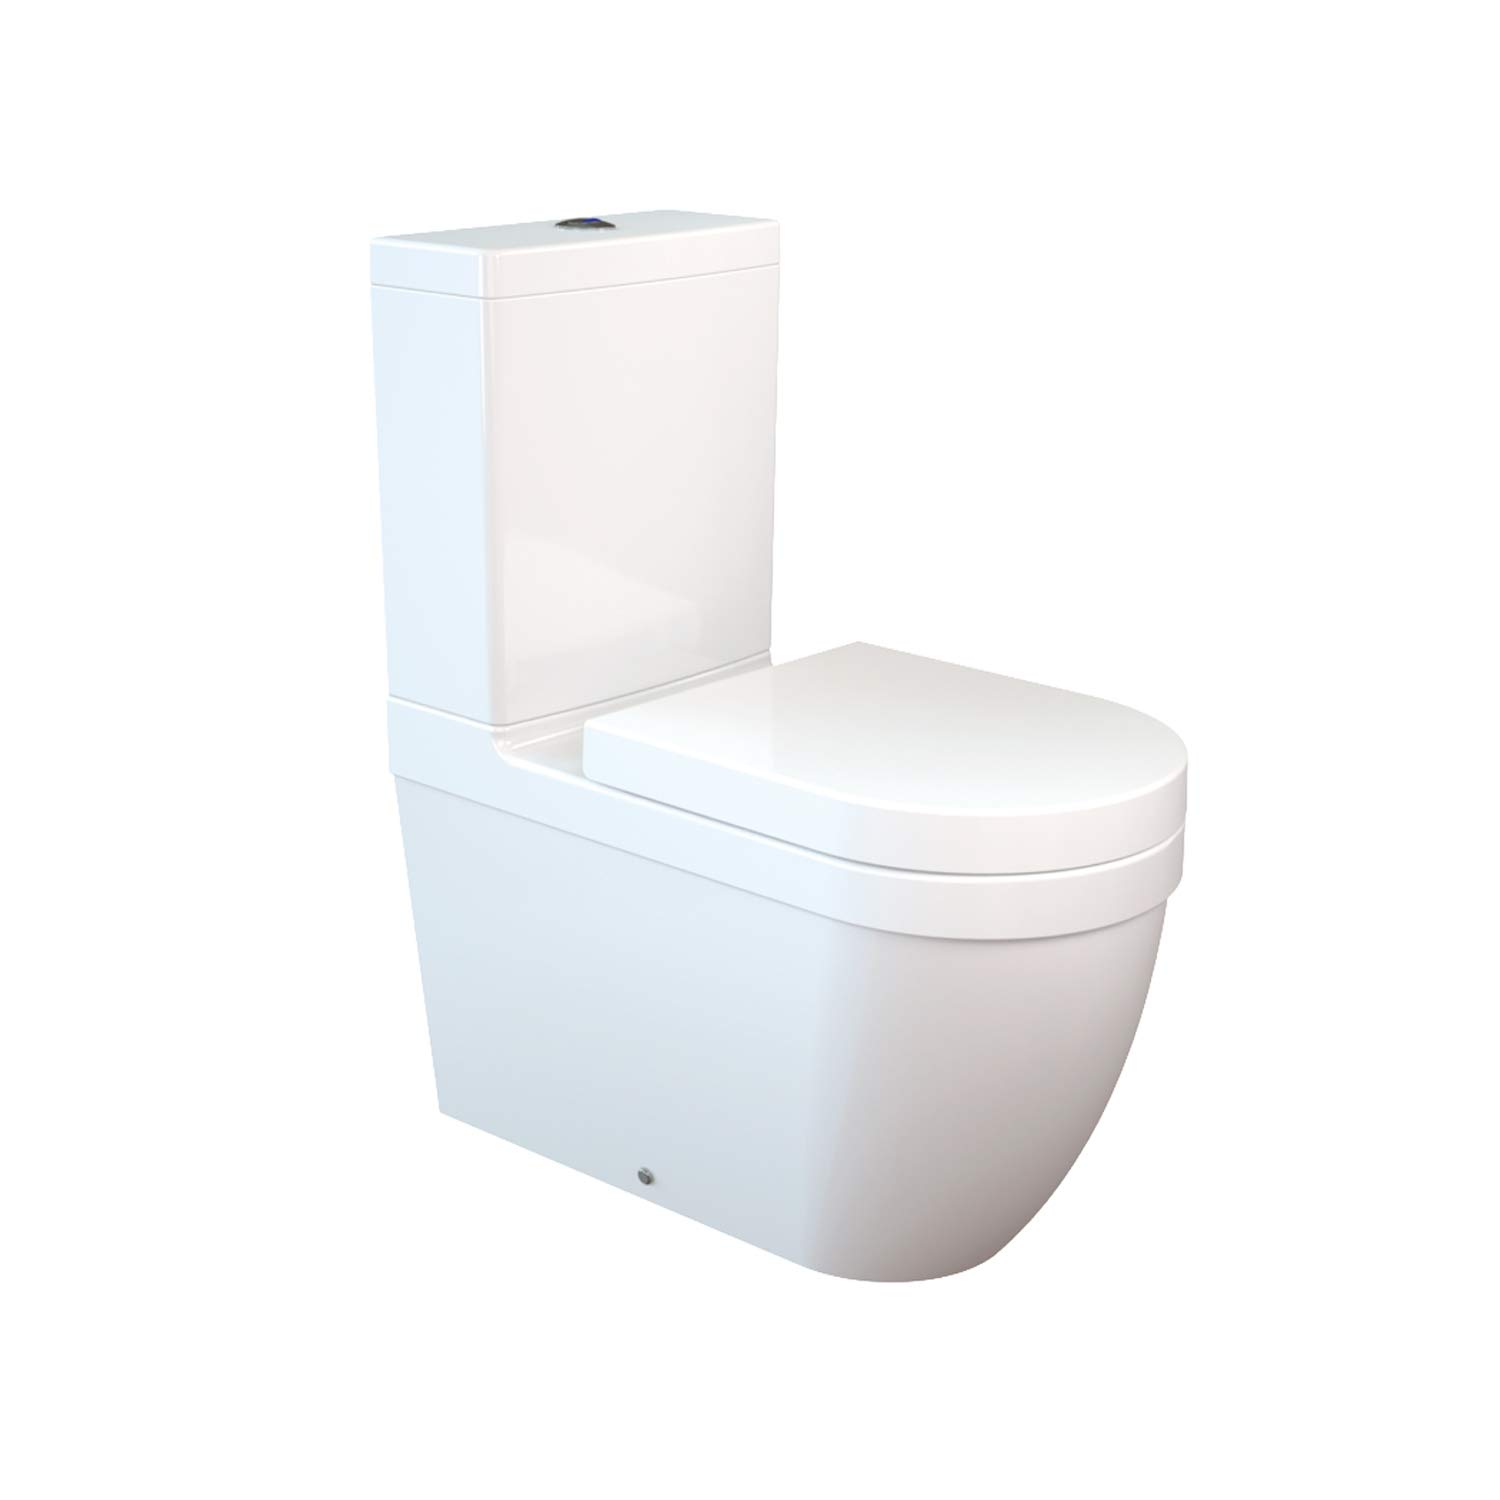 Amazing Daria All In One Combined Bidet Toilet With Soft Close Seat Machost Co Dining Chair Design Ideas Machostcouk